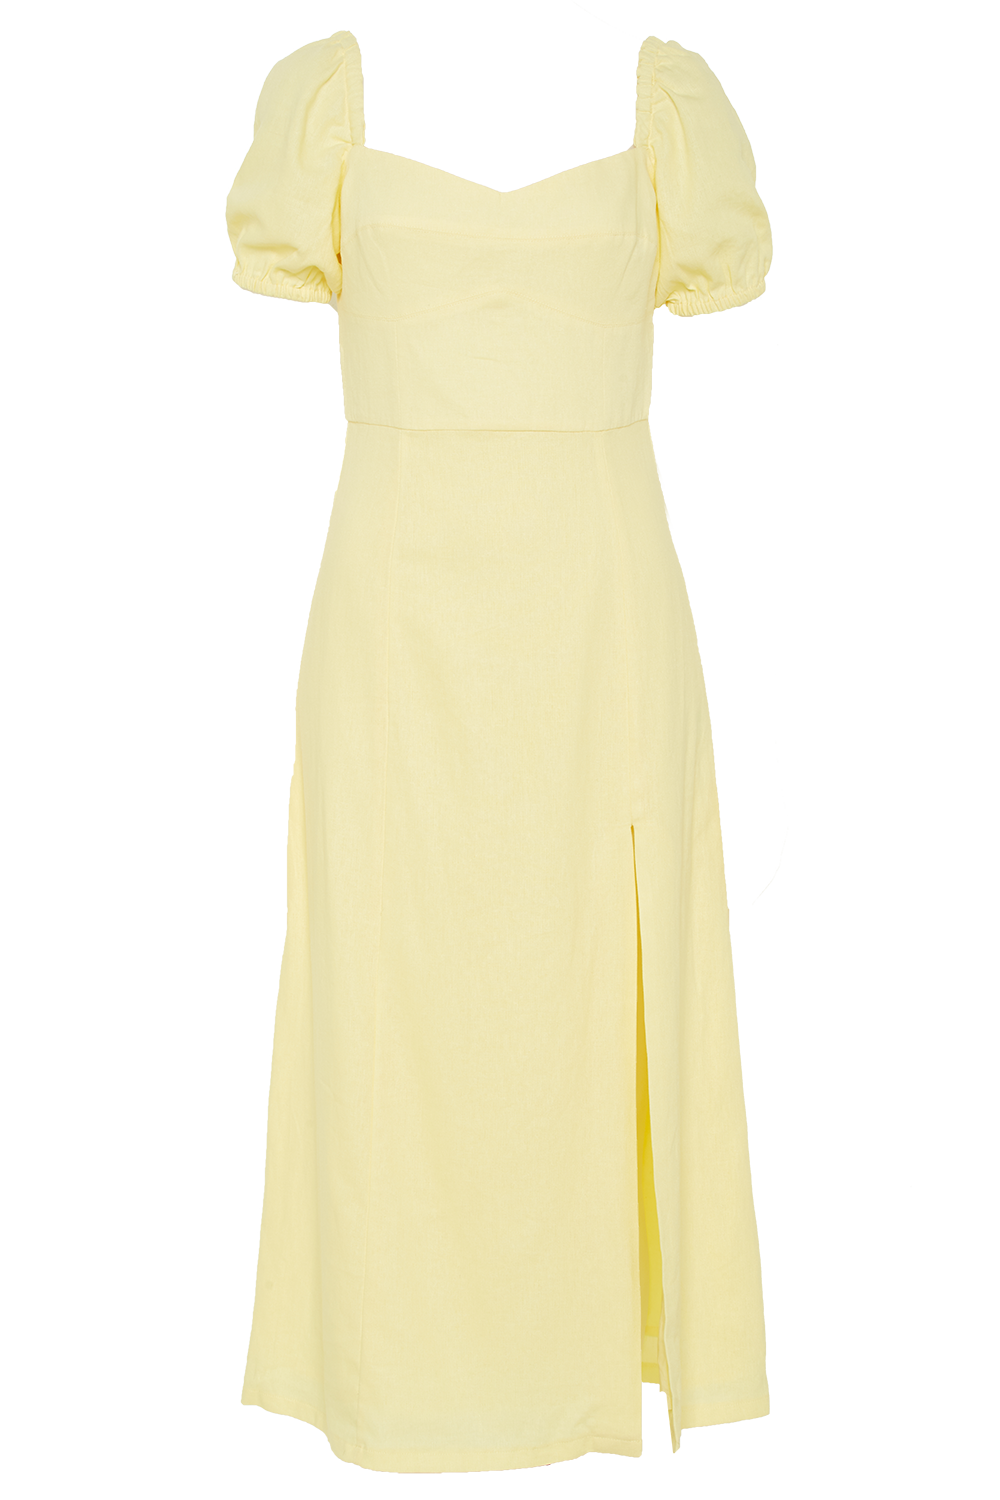 JACYNTA DRESS in colour CAVIAR